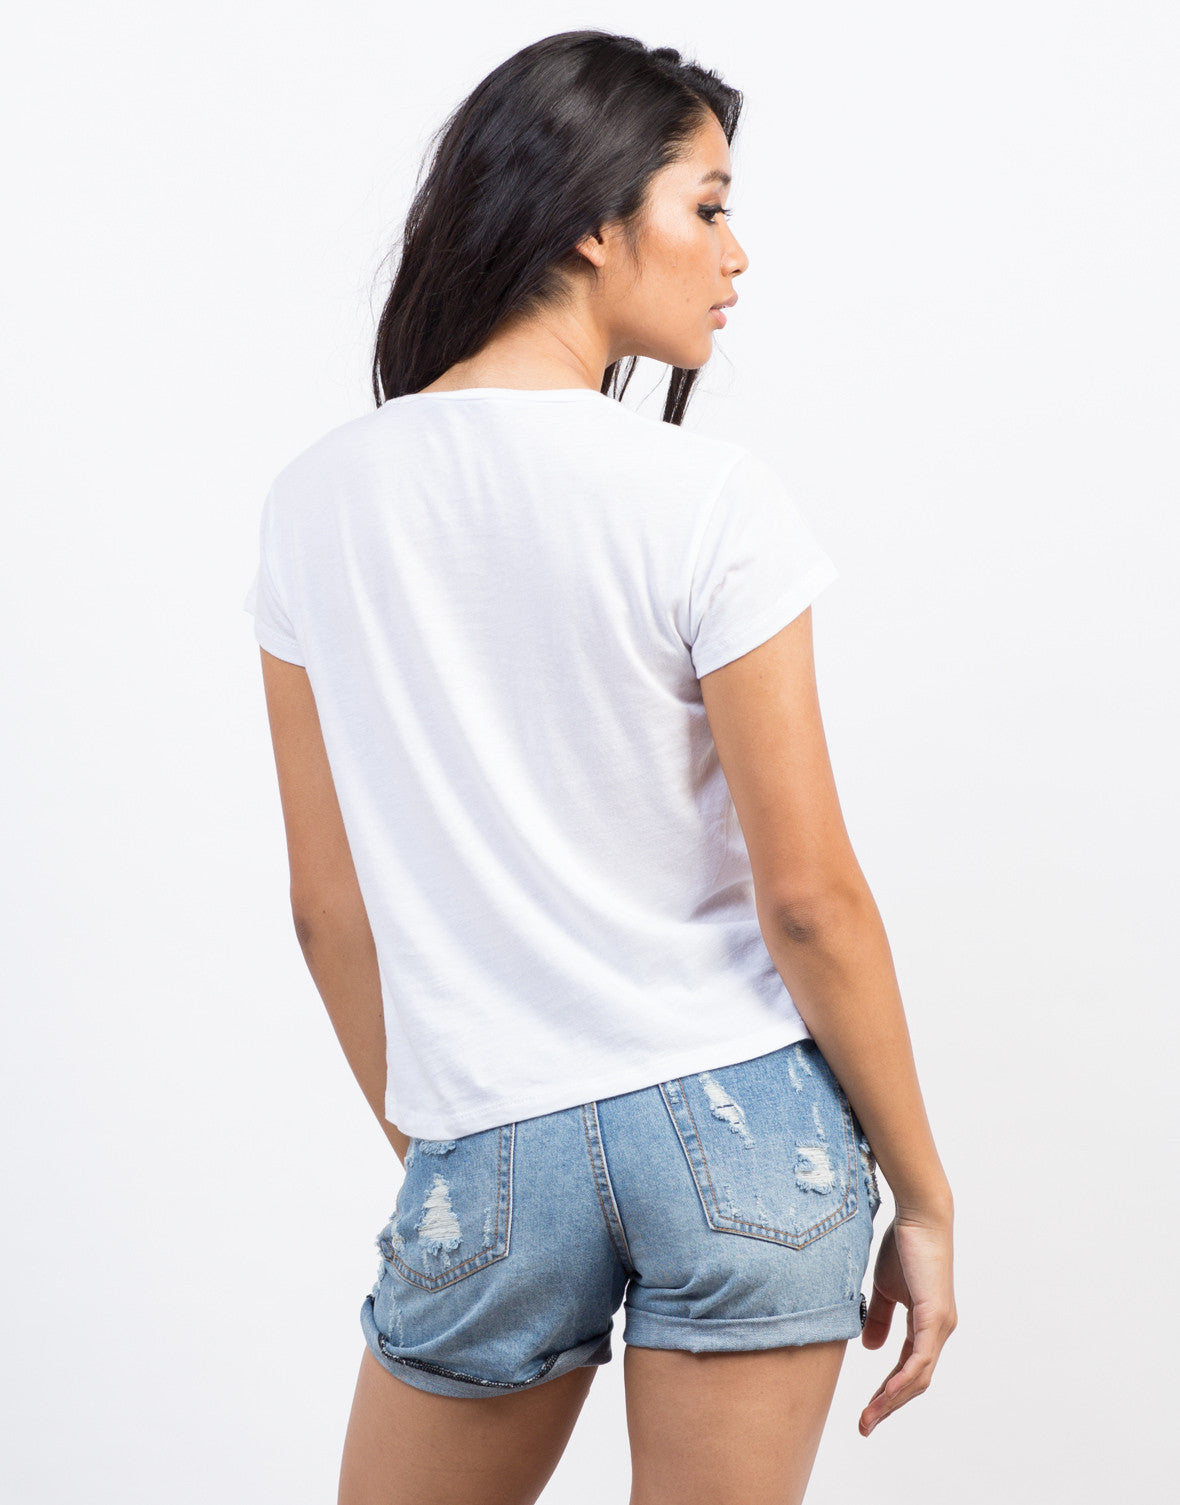 Back View of Espresso Yourself Tee